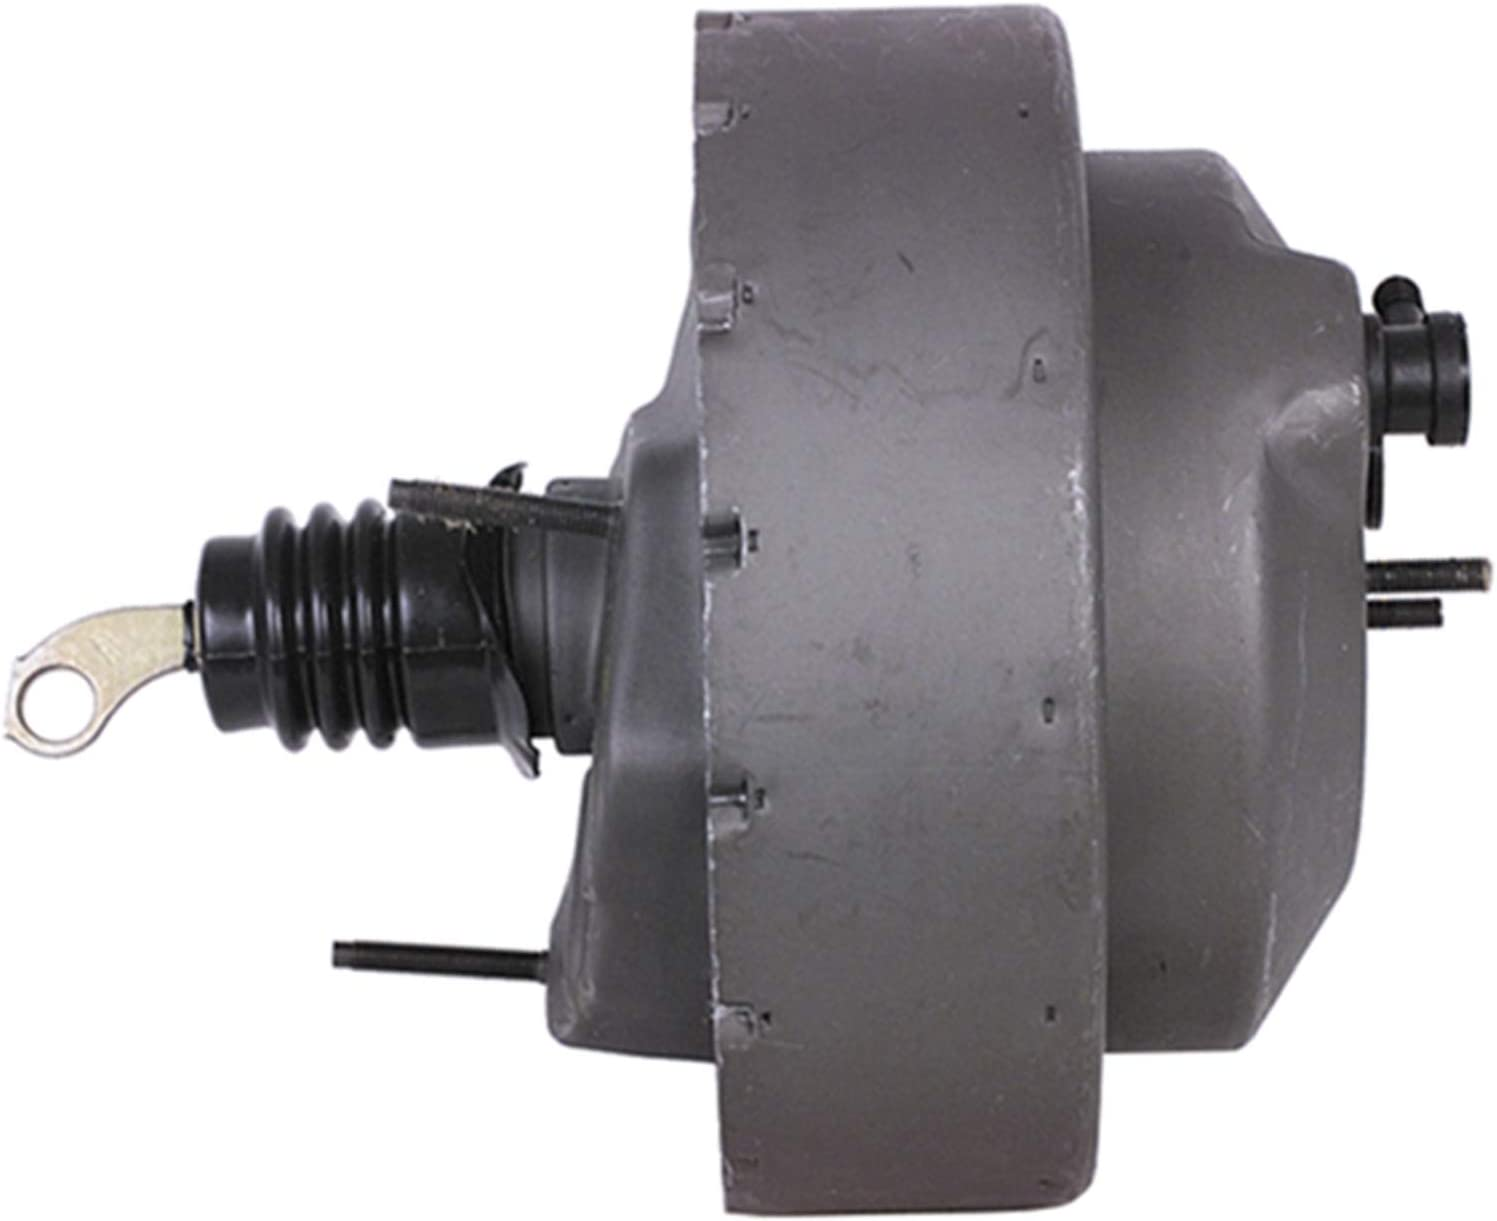 Outlet SALE Special price Cardone 54-74700 Remanufactured Vacuum Power Booster witho Brake